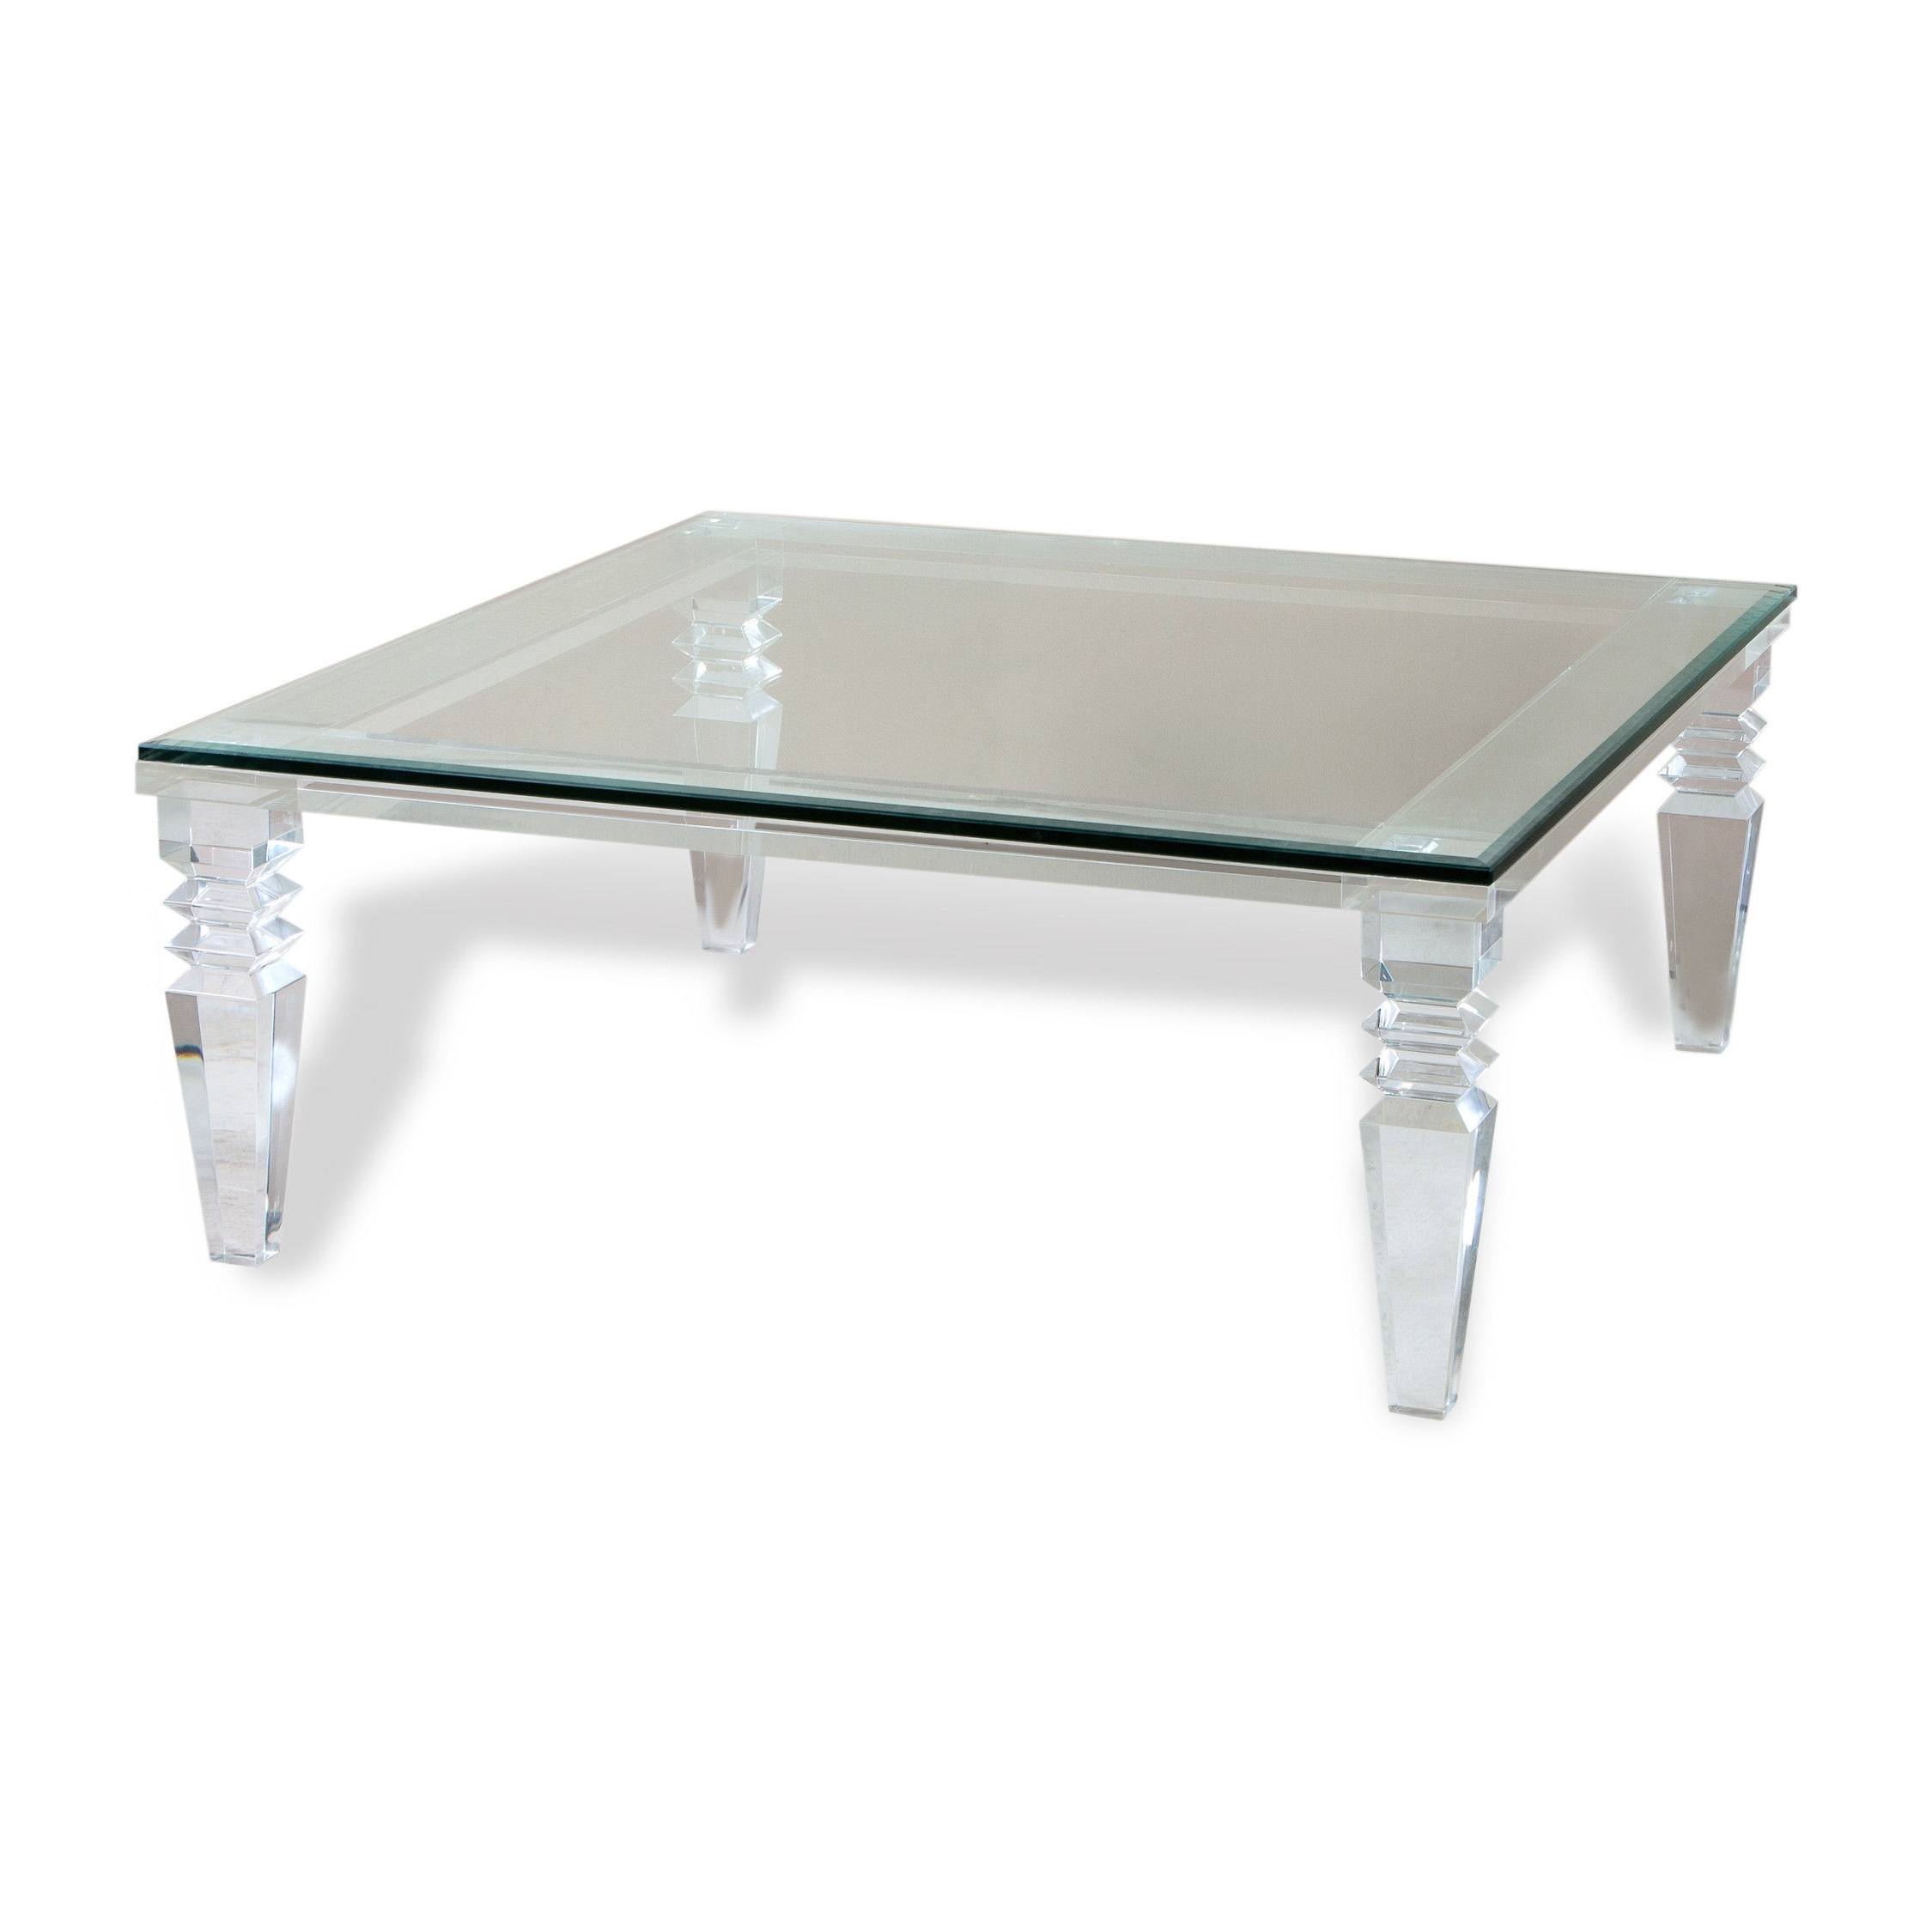 Acrylic Coffee Table For Sale Lovely Furniture Clear Glass Coffee For Recent Peekaboo Acrylic Coffee Tables (View 5 of 20)